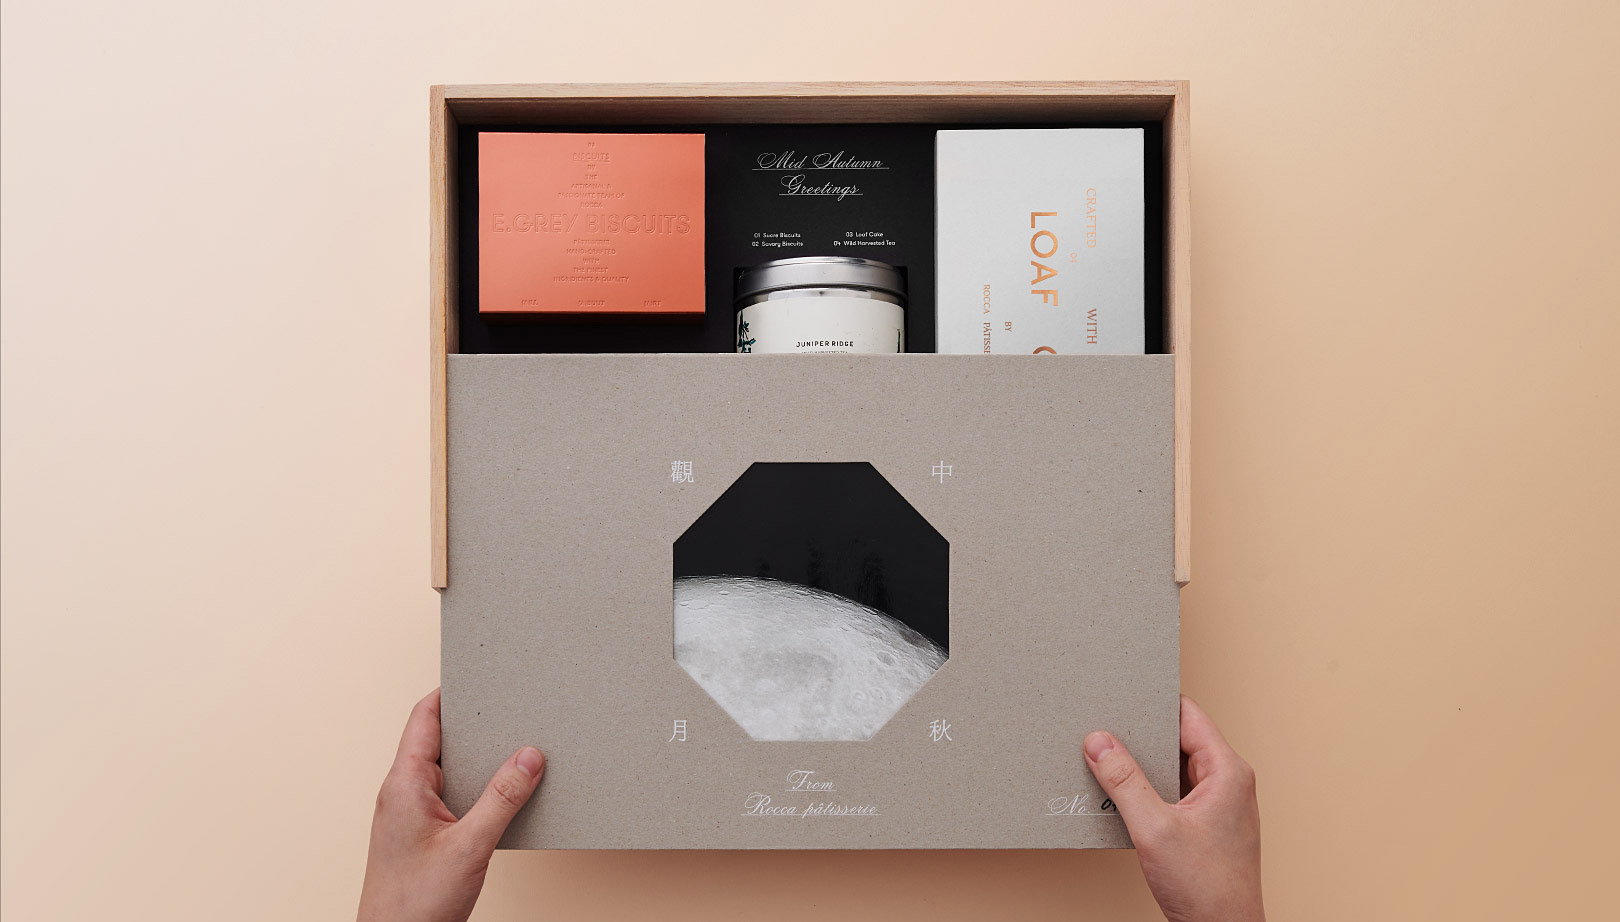 The Unique Moon Cookies Giftbox Designed With More Than 100 Photos of the Moon